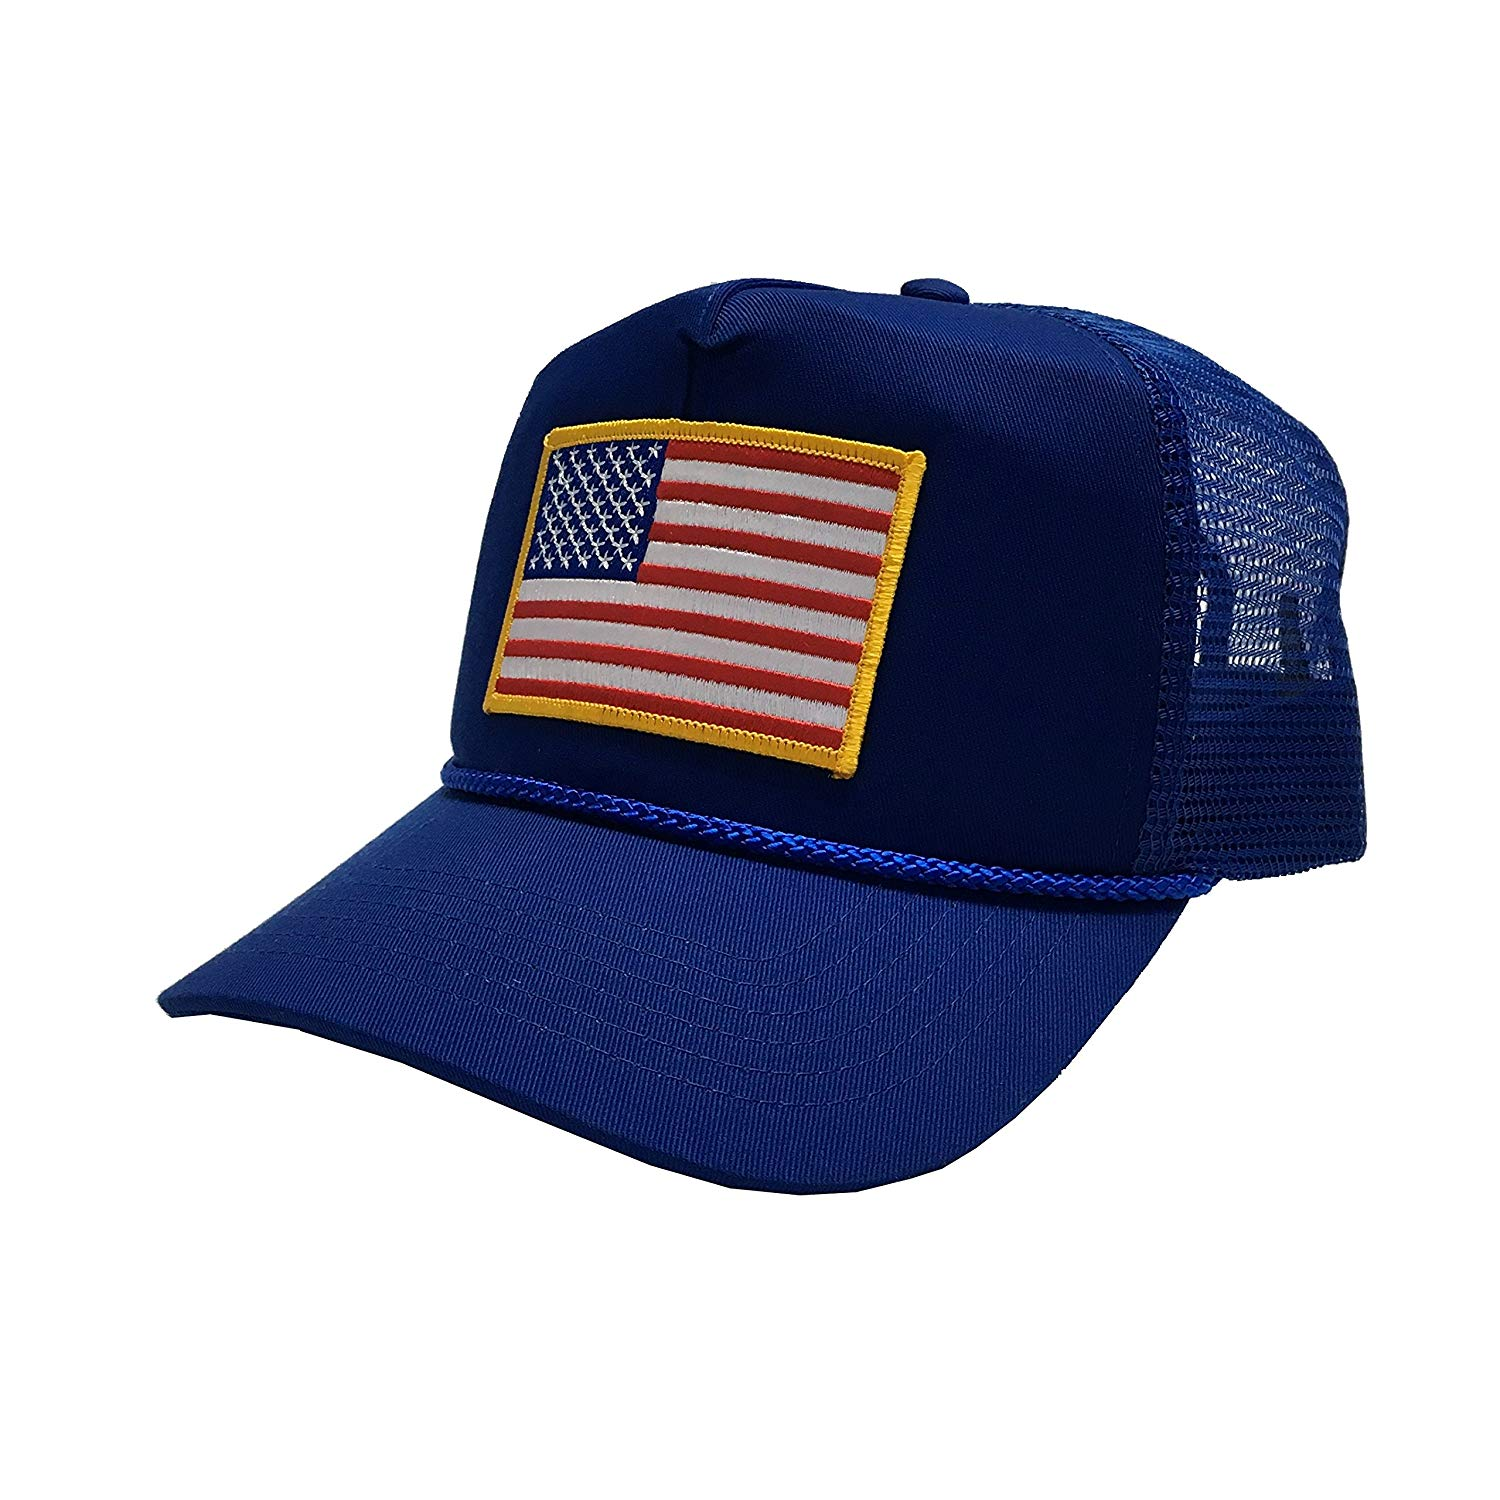 P&B USA Flag Embroidery Patch United States of America Adjustable Mesh Unisex Adult Cap 4th of July Patriotic Hats